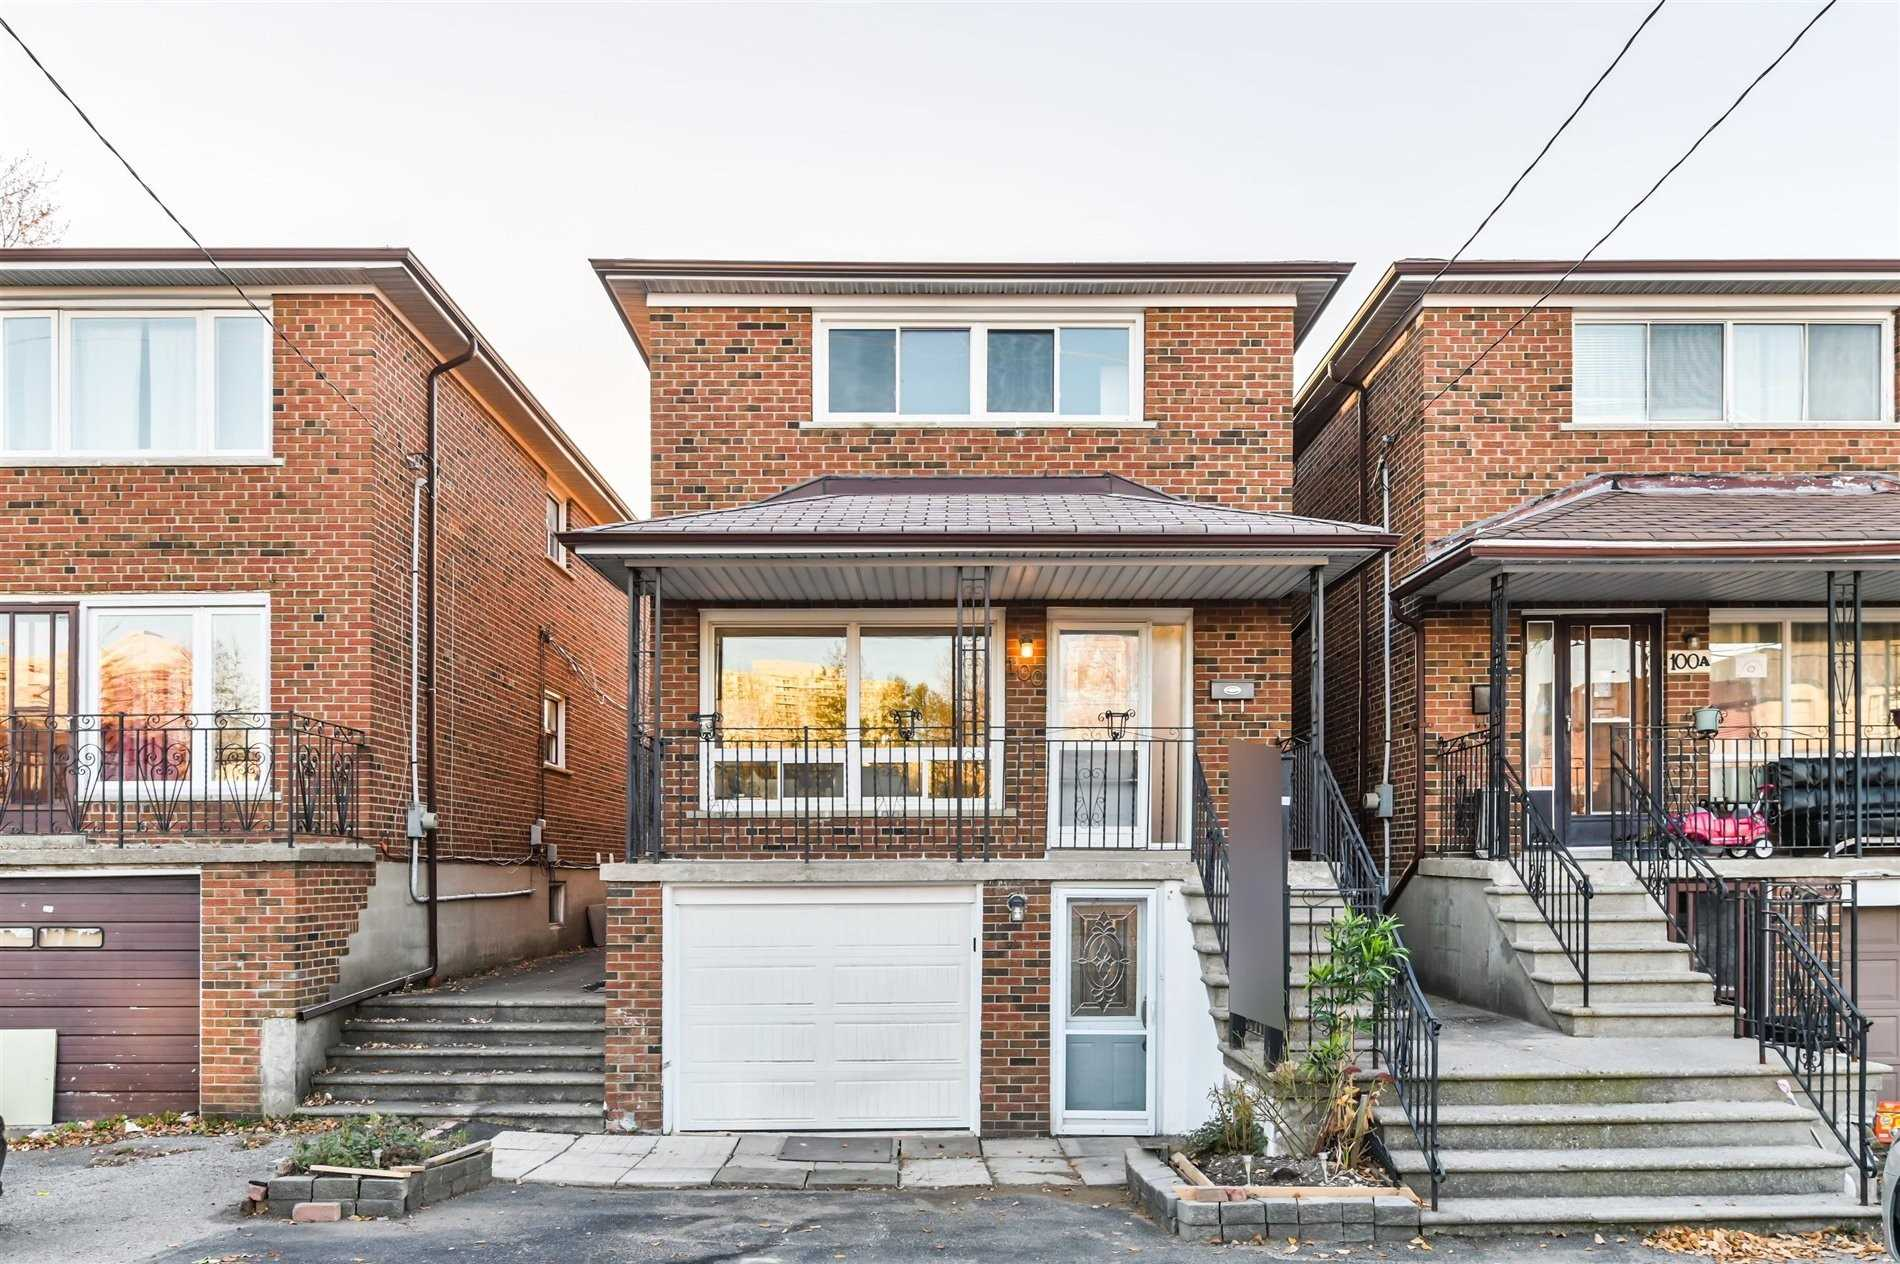 For Sale: 100 Laurel Avenue, Toronto, ON | 3 Bed, 3 Bath House for $899999.00. See 27 photos!